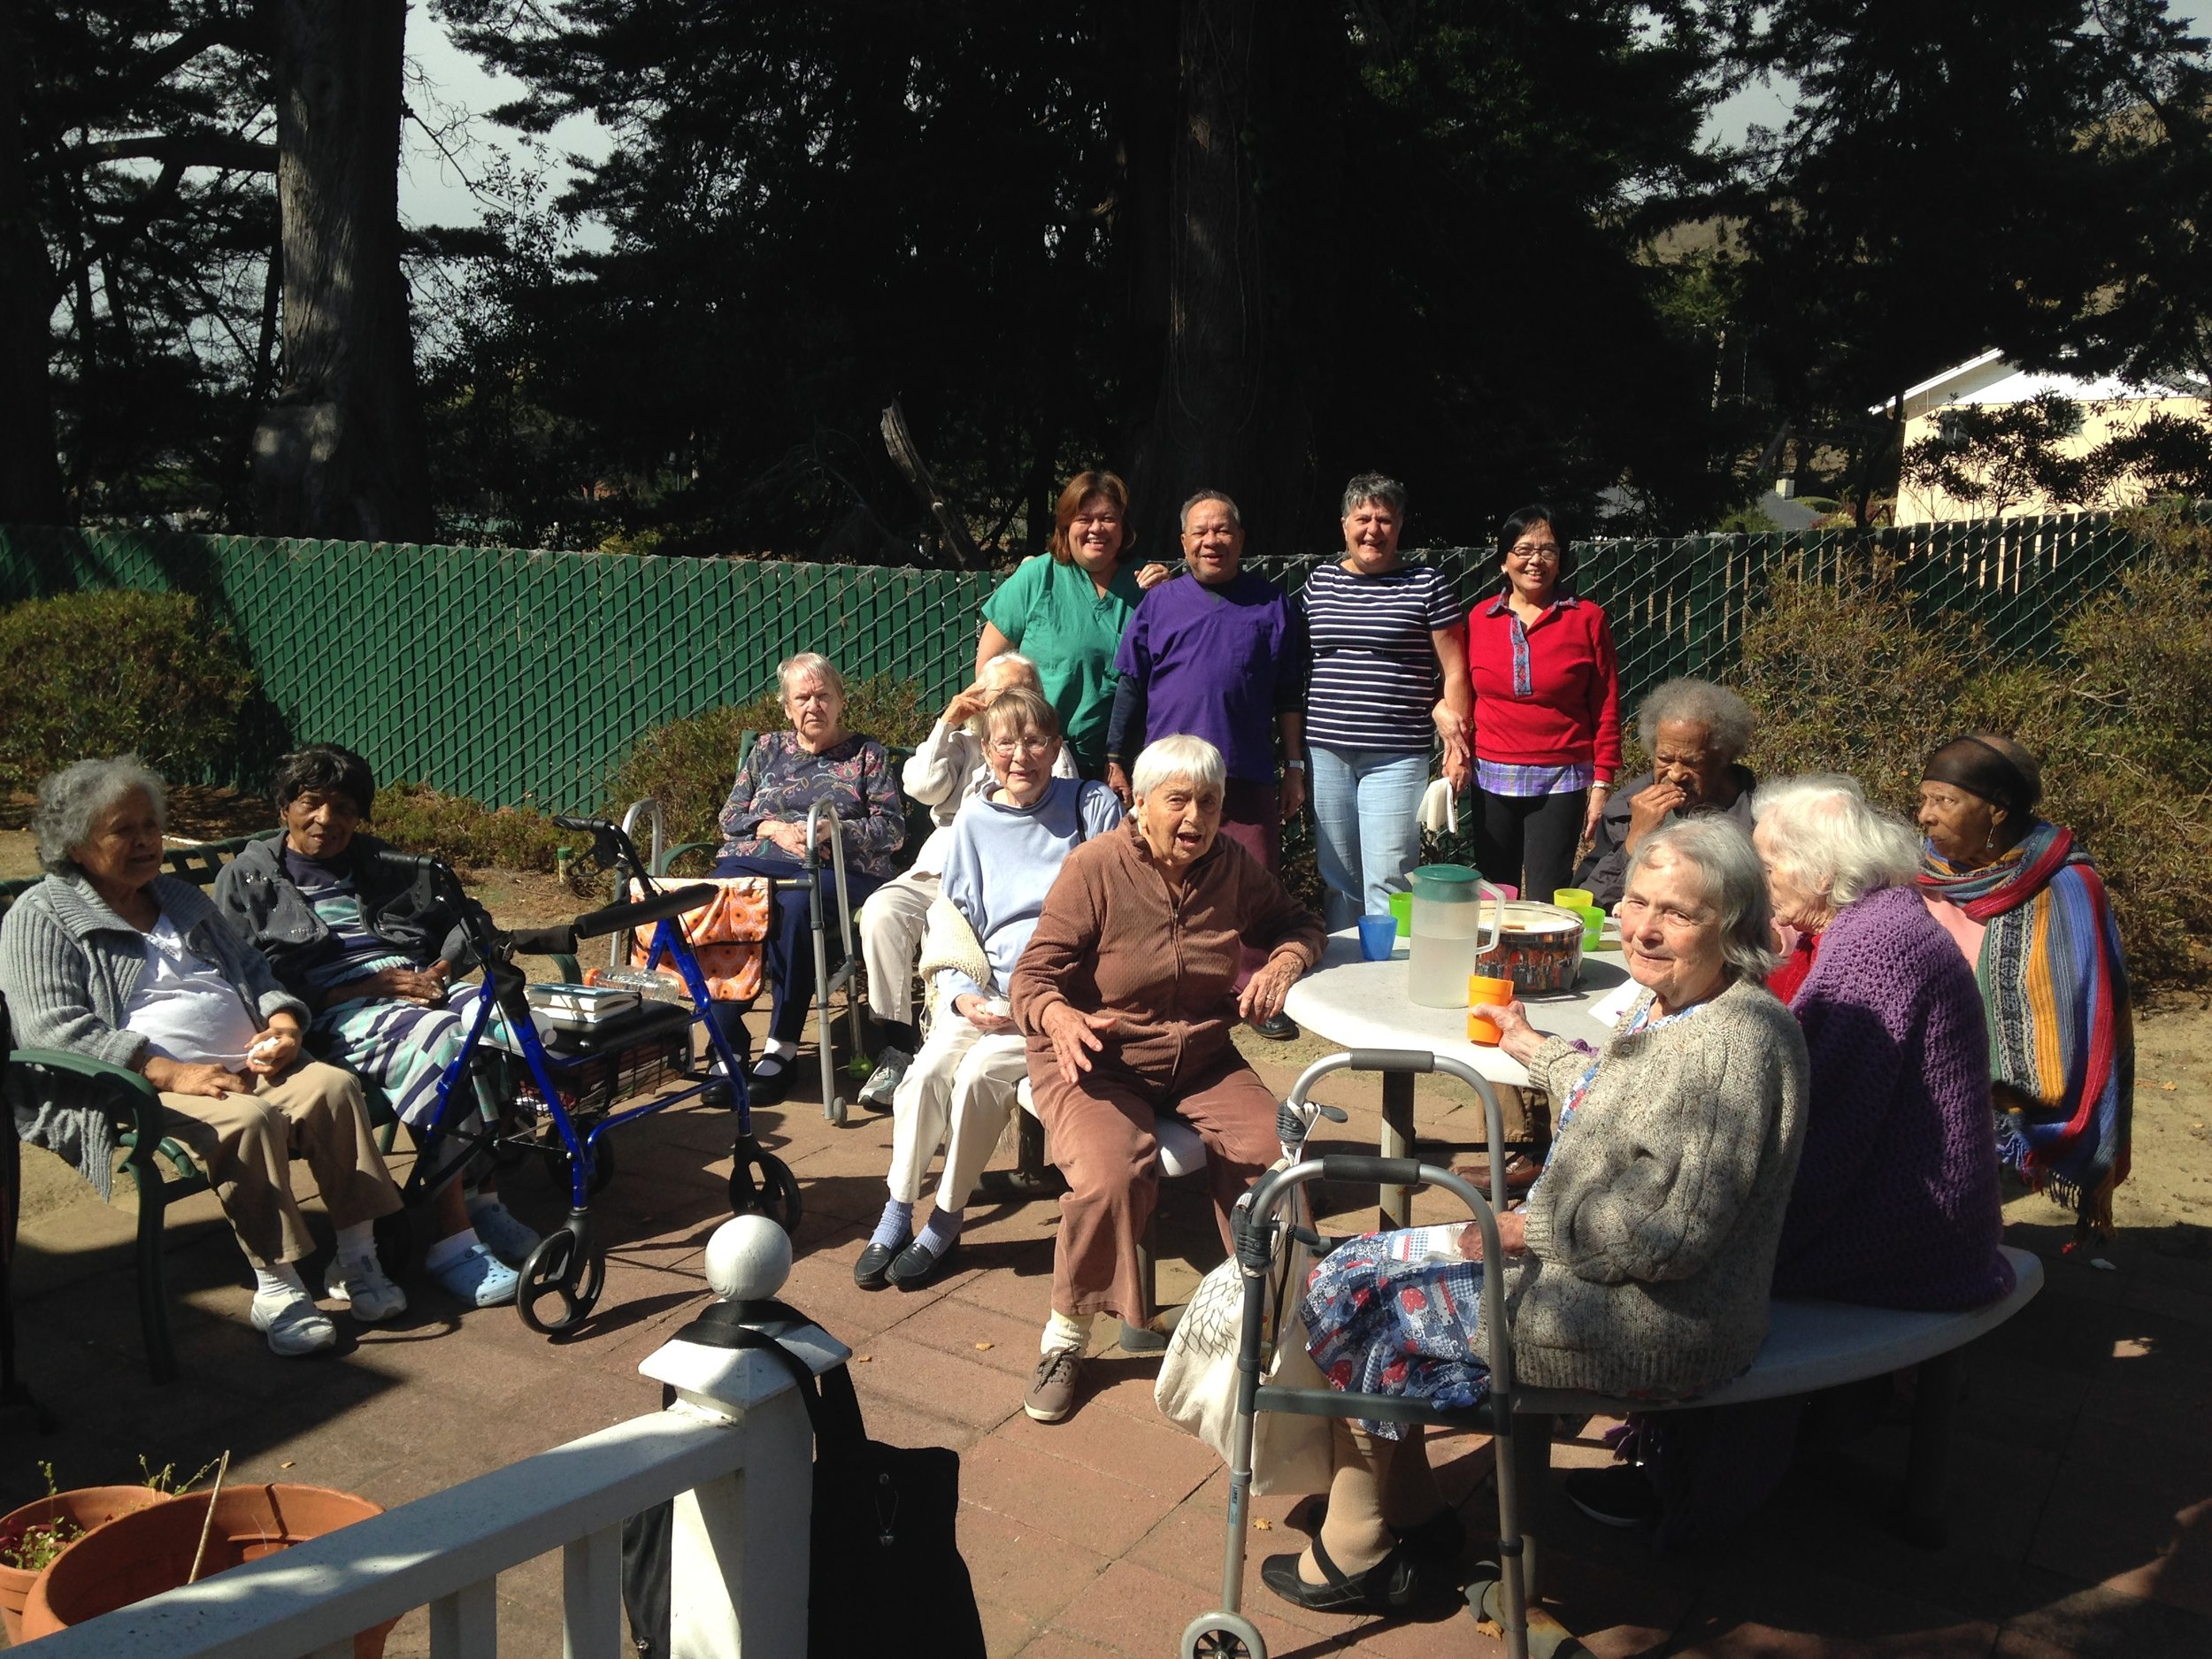 Sun valley Chateau Pacifica elderly and senior care back yard picnic and beach day